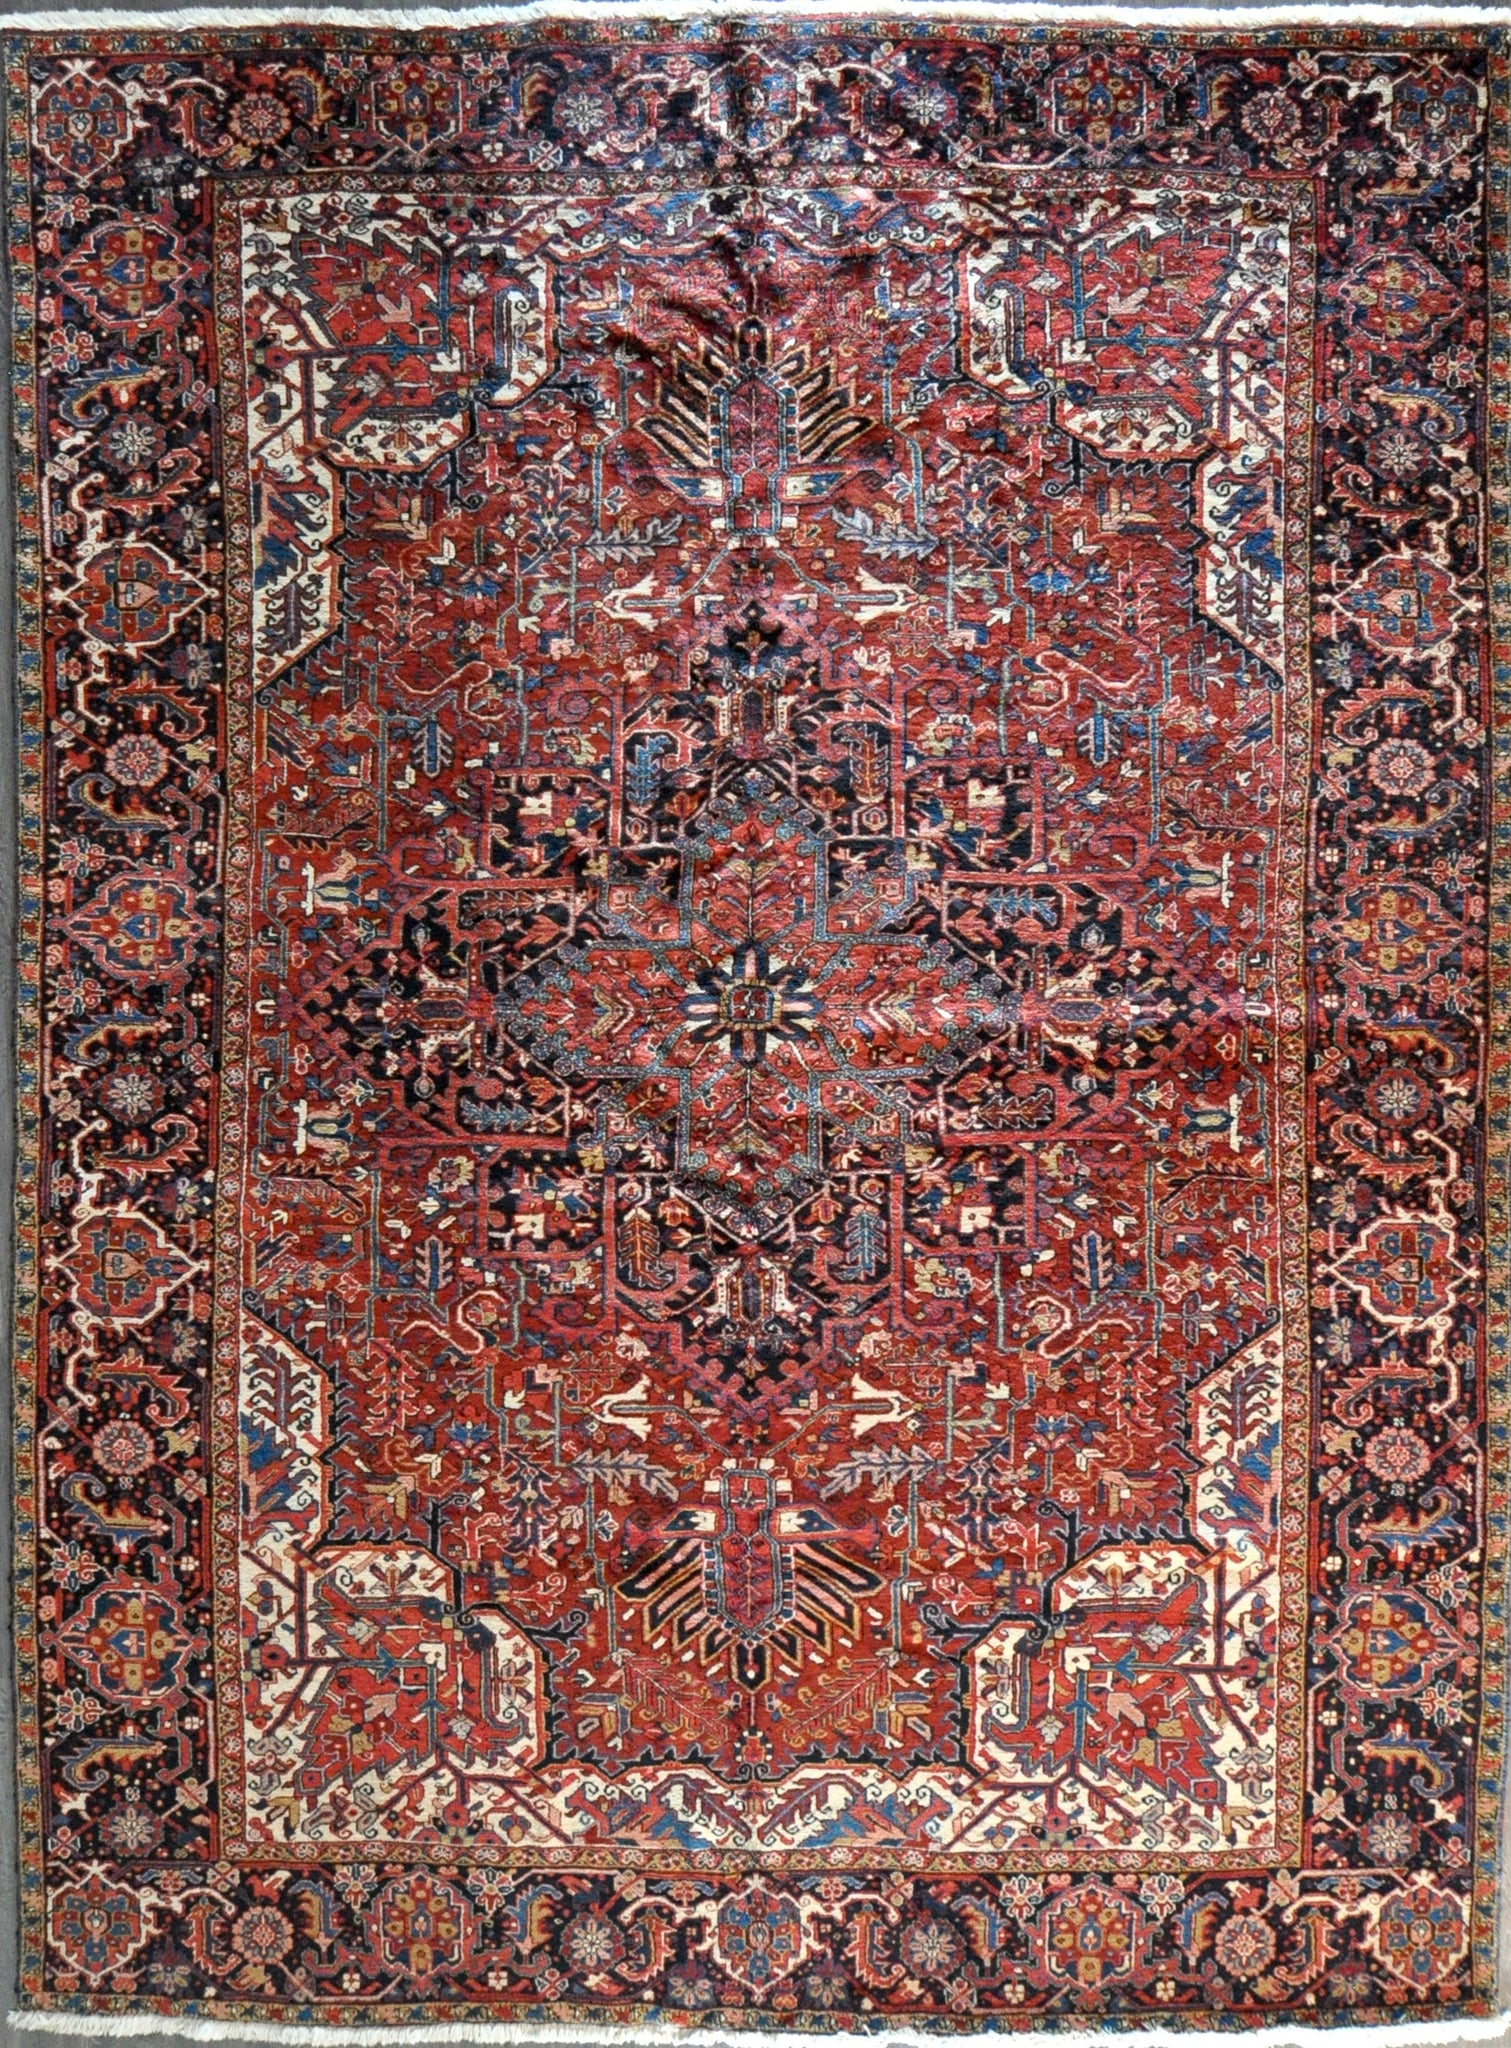 10.2x13.8 antique persian heriz #68125